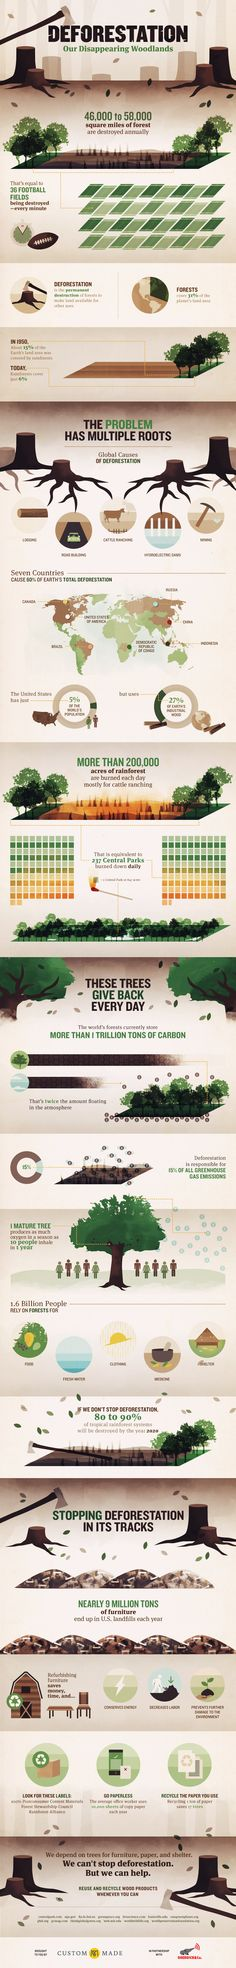 Deforestation / Déforestation